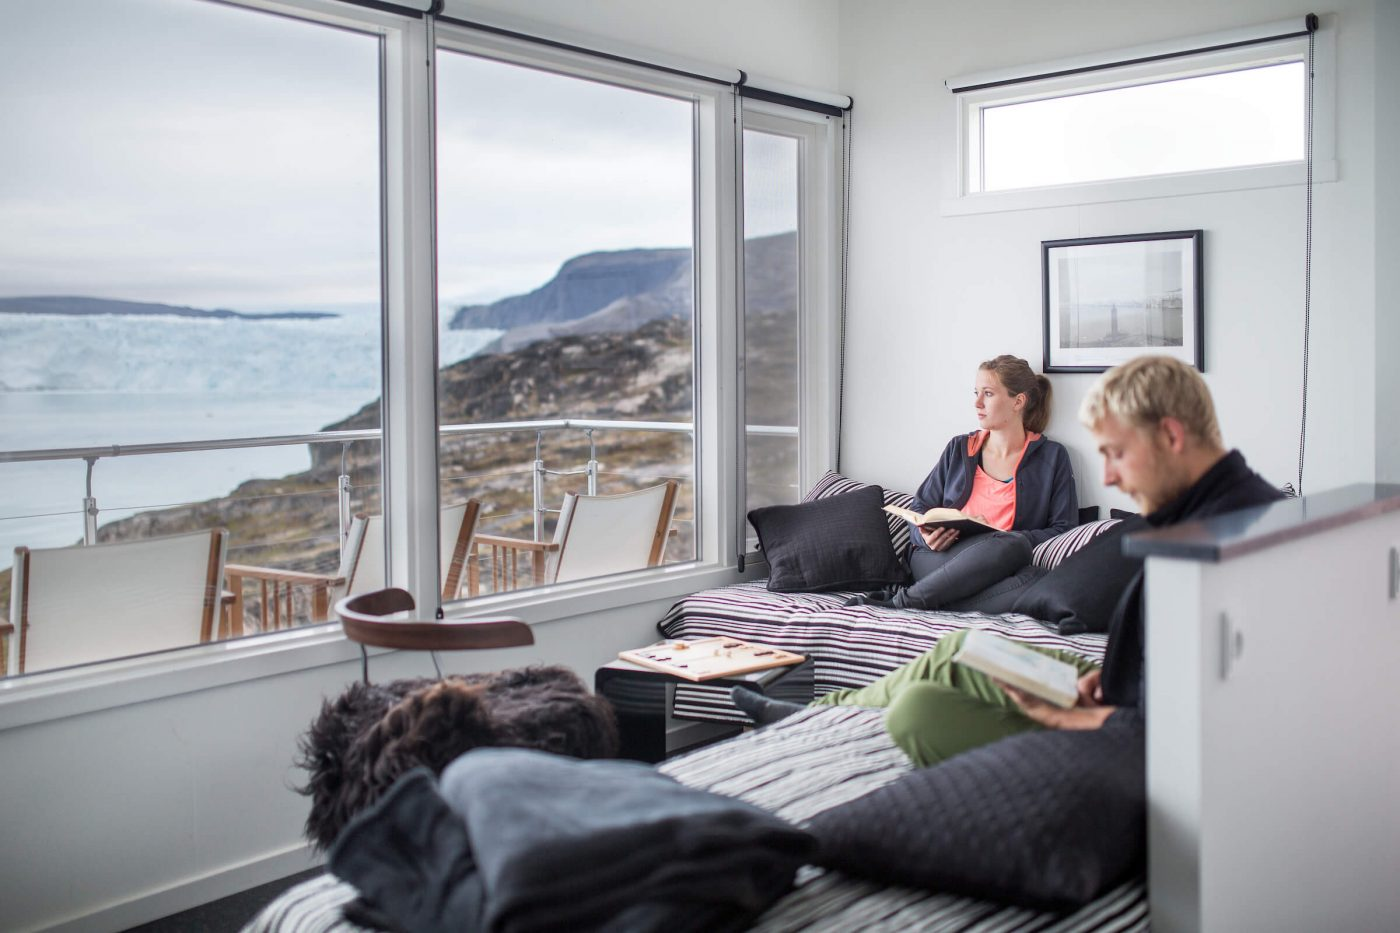 Guests enjoying a quiet moment in one of the Eqi Glacier Lodge comfort huts in Greenland. Photo by Mads Pihl, Visit Greenland